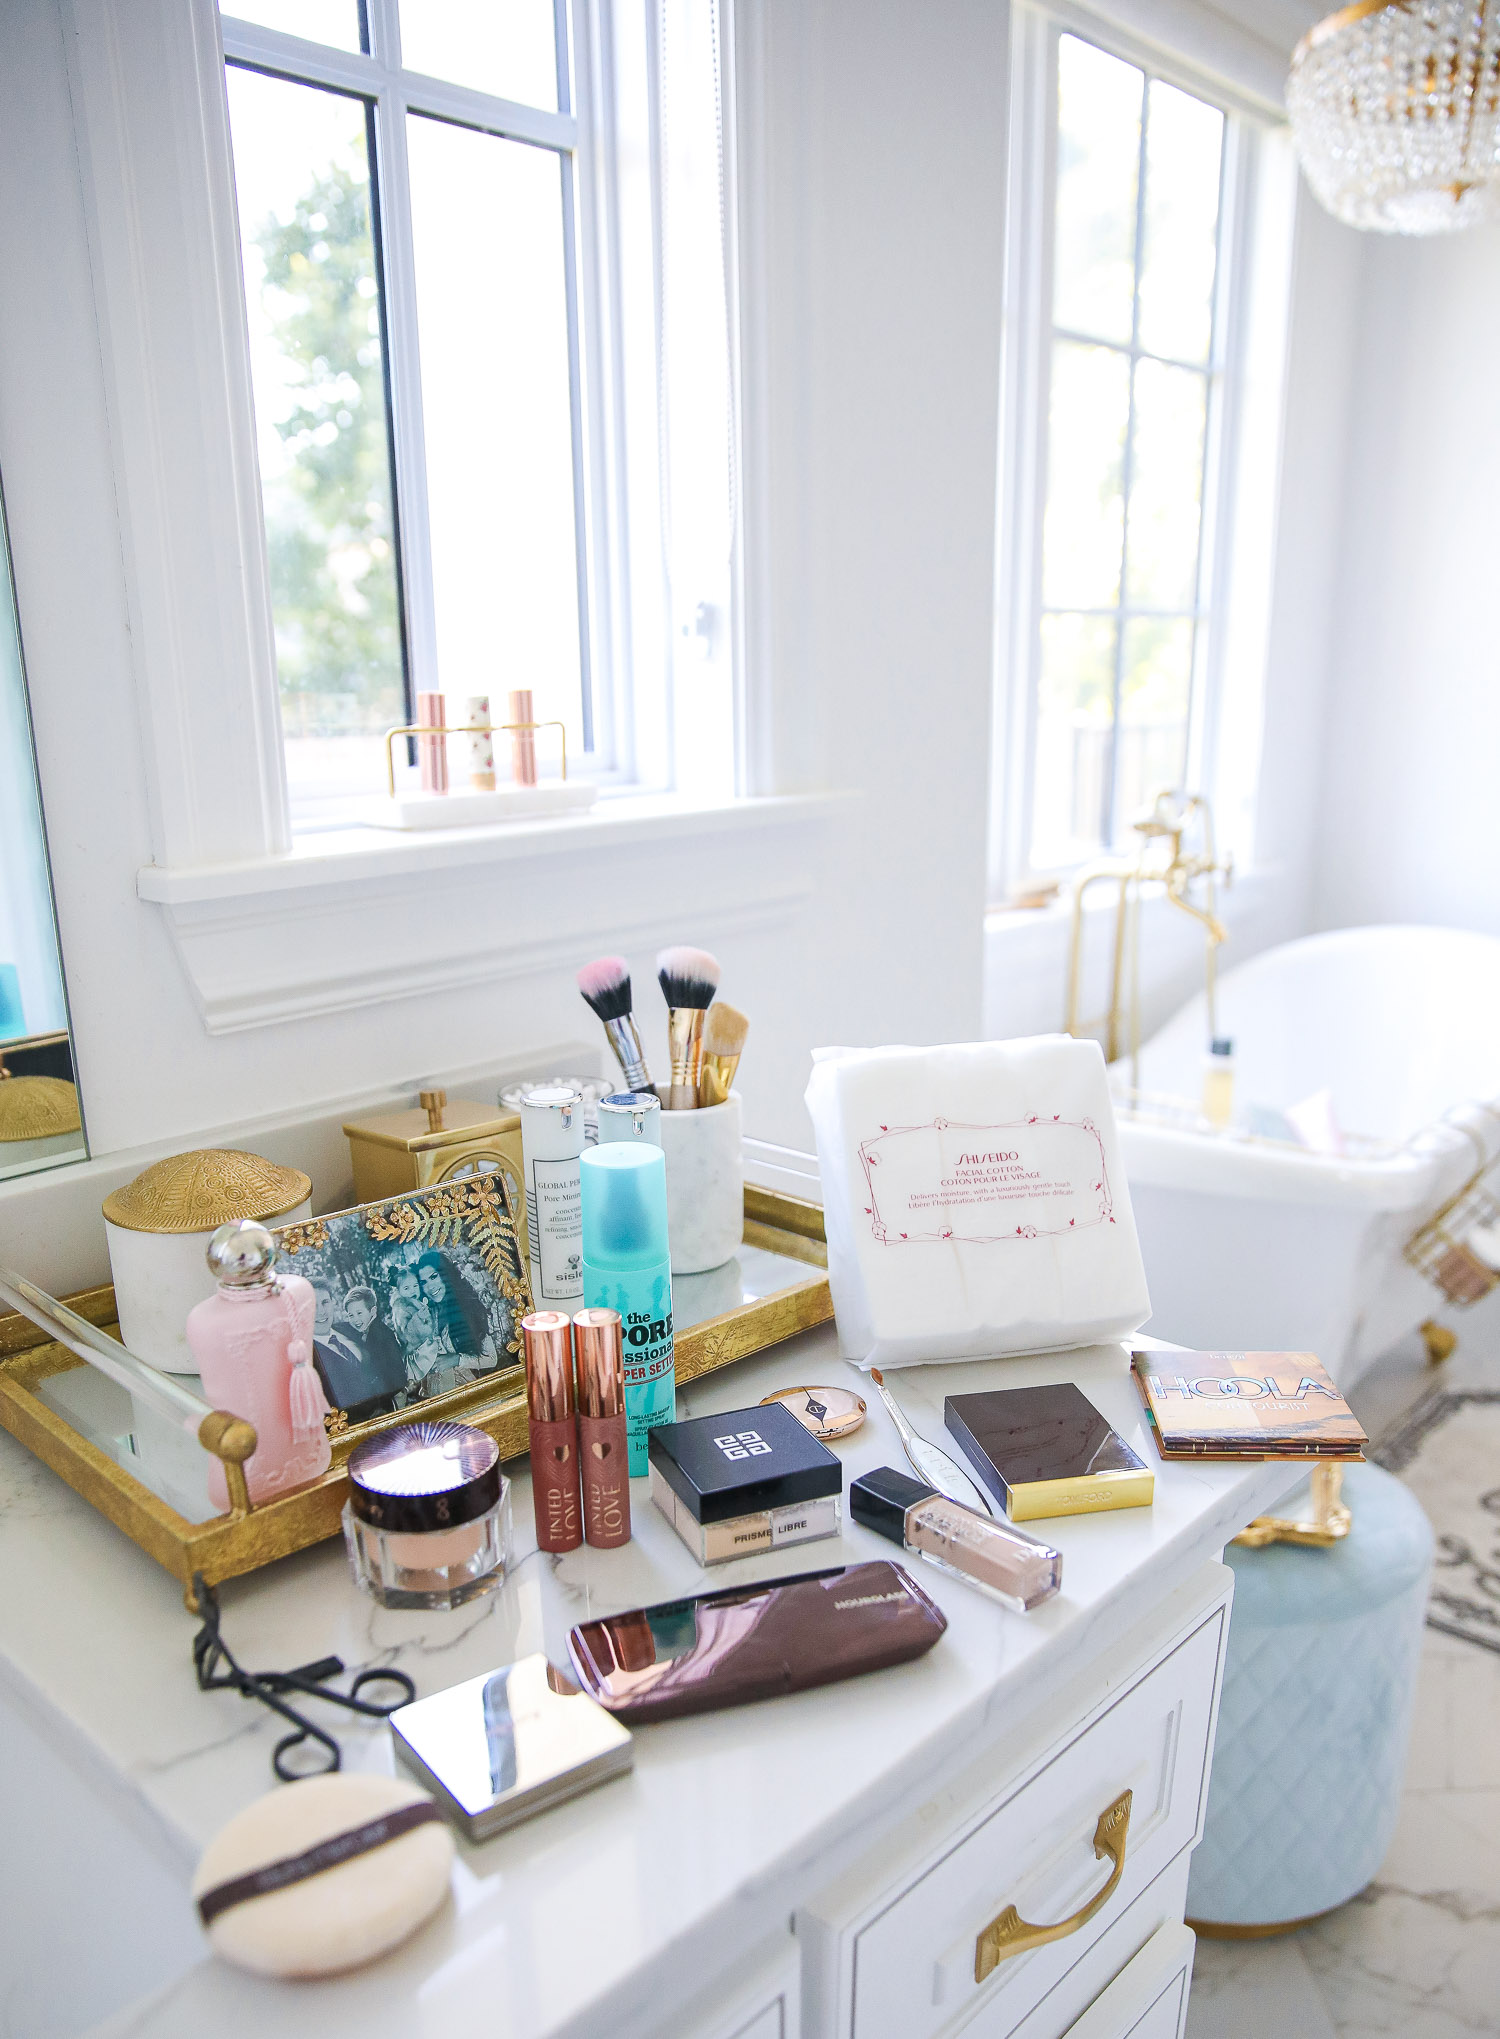 nordstrom beauty must haves fall 2021, sisley pore minimizer review, sisley blur powder review, sisley hyaluronic acid, emily gemma beauty must haves, hoola bronzer palette |  Beauty Favorites by popular US beauty blog, The Sweetest Thing: image of various makeup products spread across a white marble vanity top.